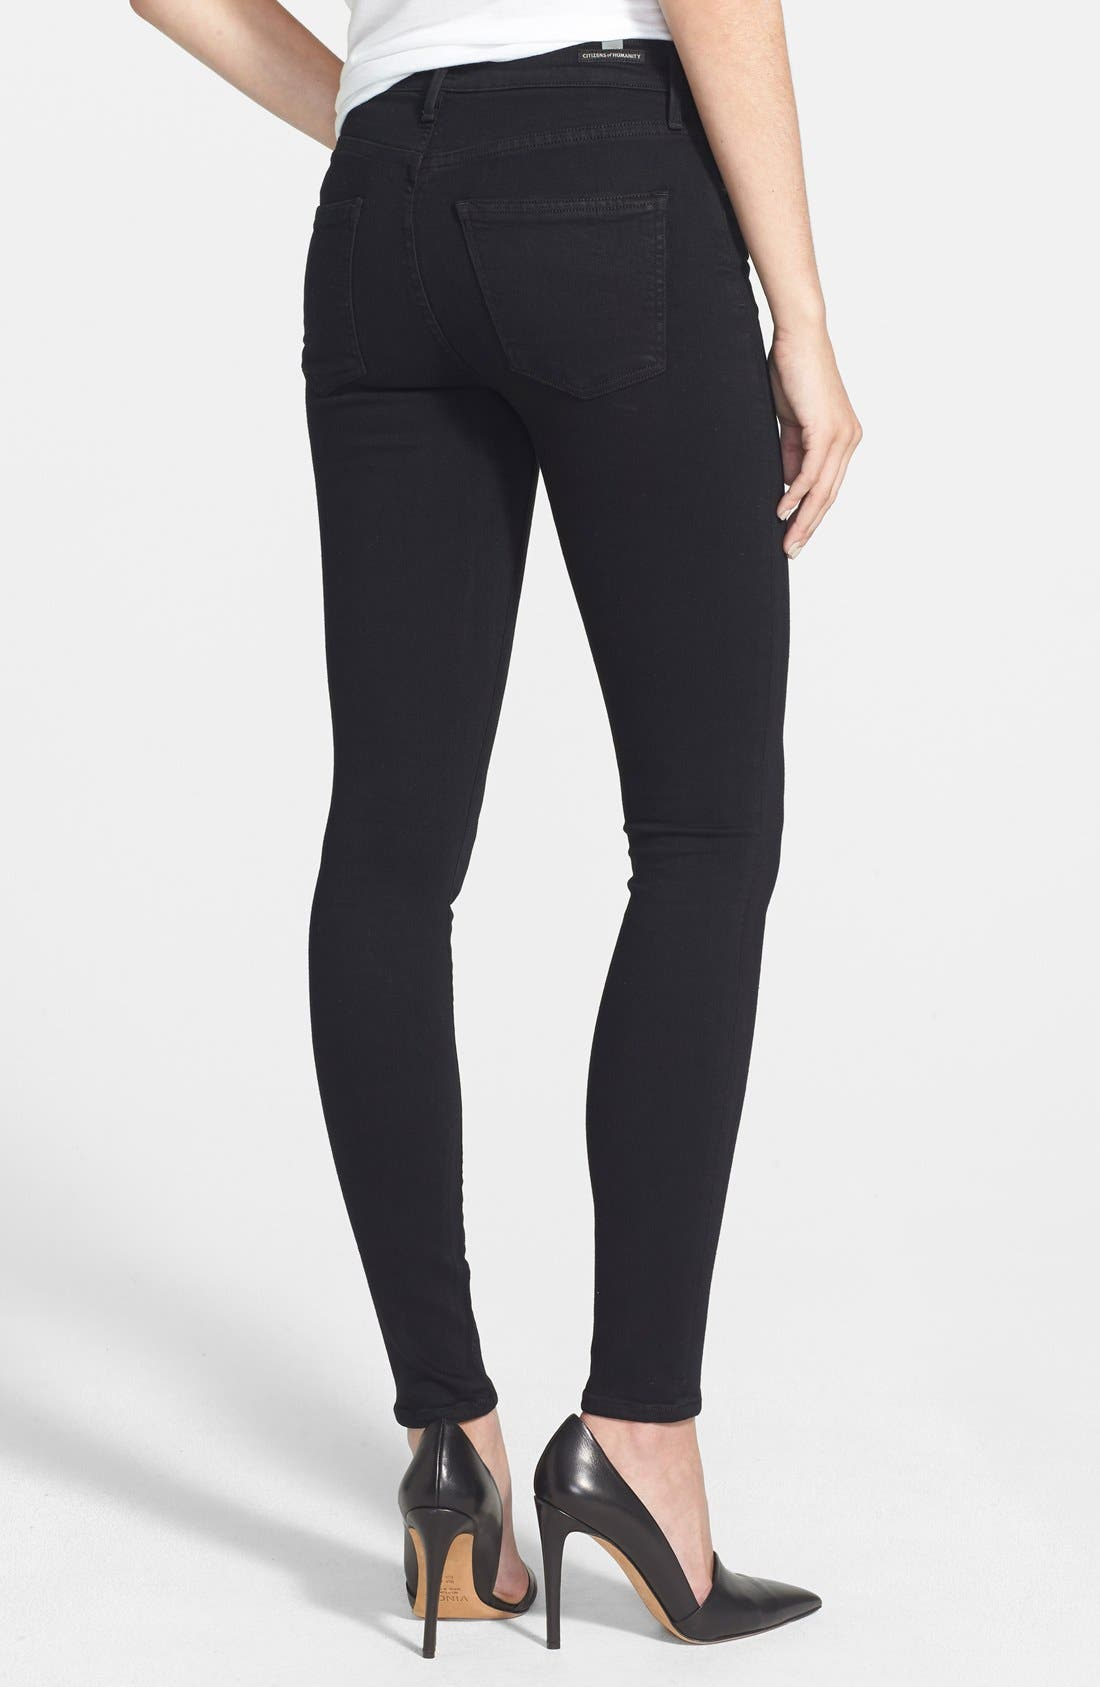 CITIZENS OF HUMANITY,                             Rocket High Waist Skinny Jeans,                             Alternate thumbnail 3, color,                             001